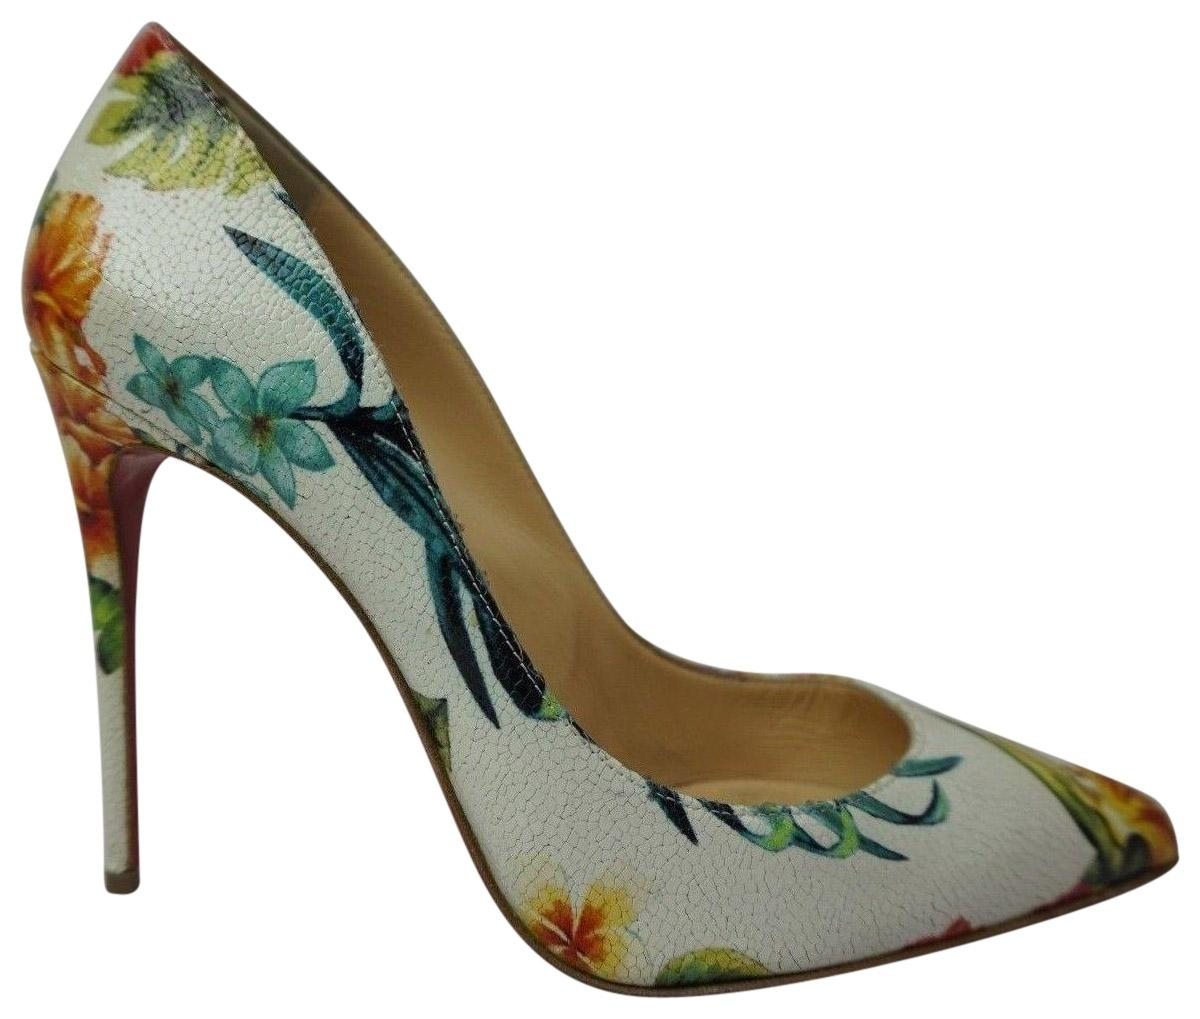 Christian Louboutin Multicolor Floral Embossed Leather Pigalle White Heels Pumps Size EU 39 (Approx. US 9) Regular (M, B)